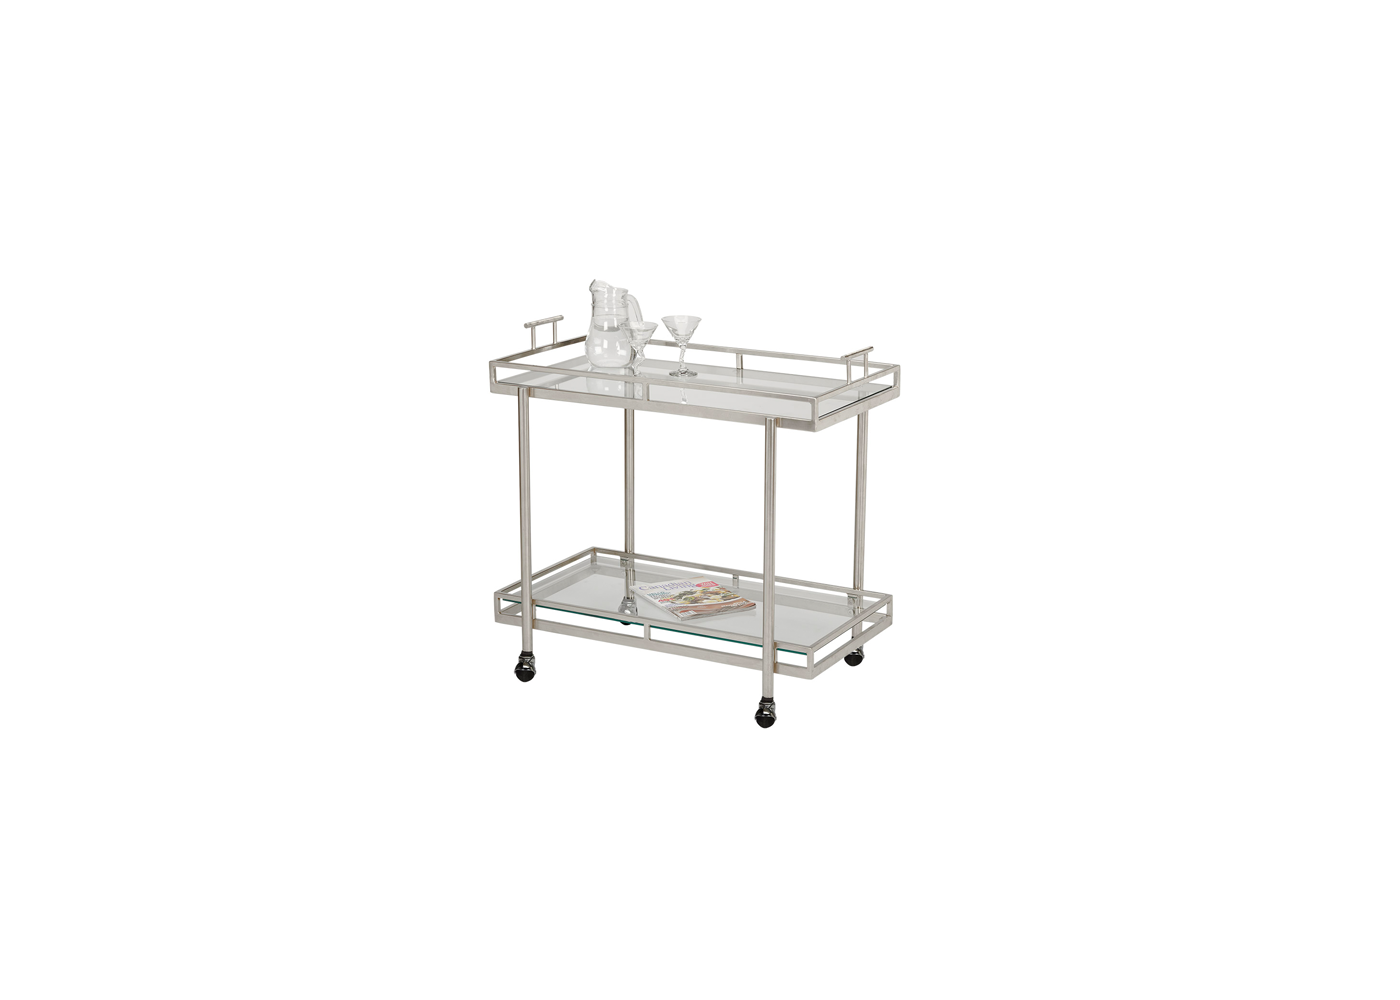 Polanco Furniture Store Ottawa Interior Decor Solutions Bar Carts